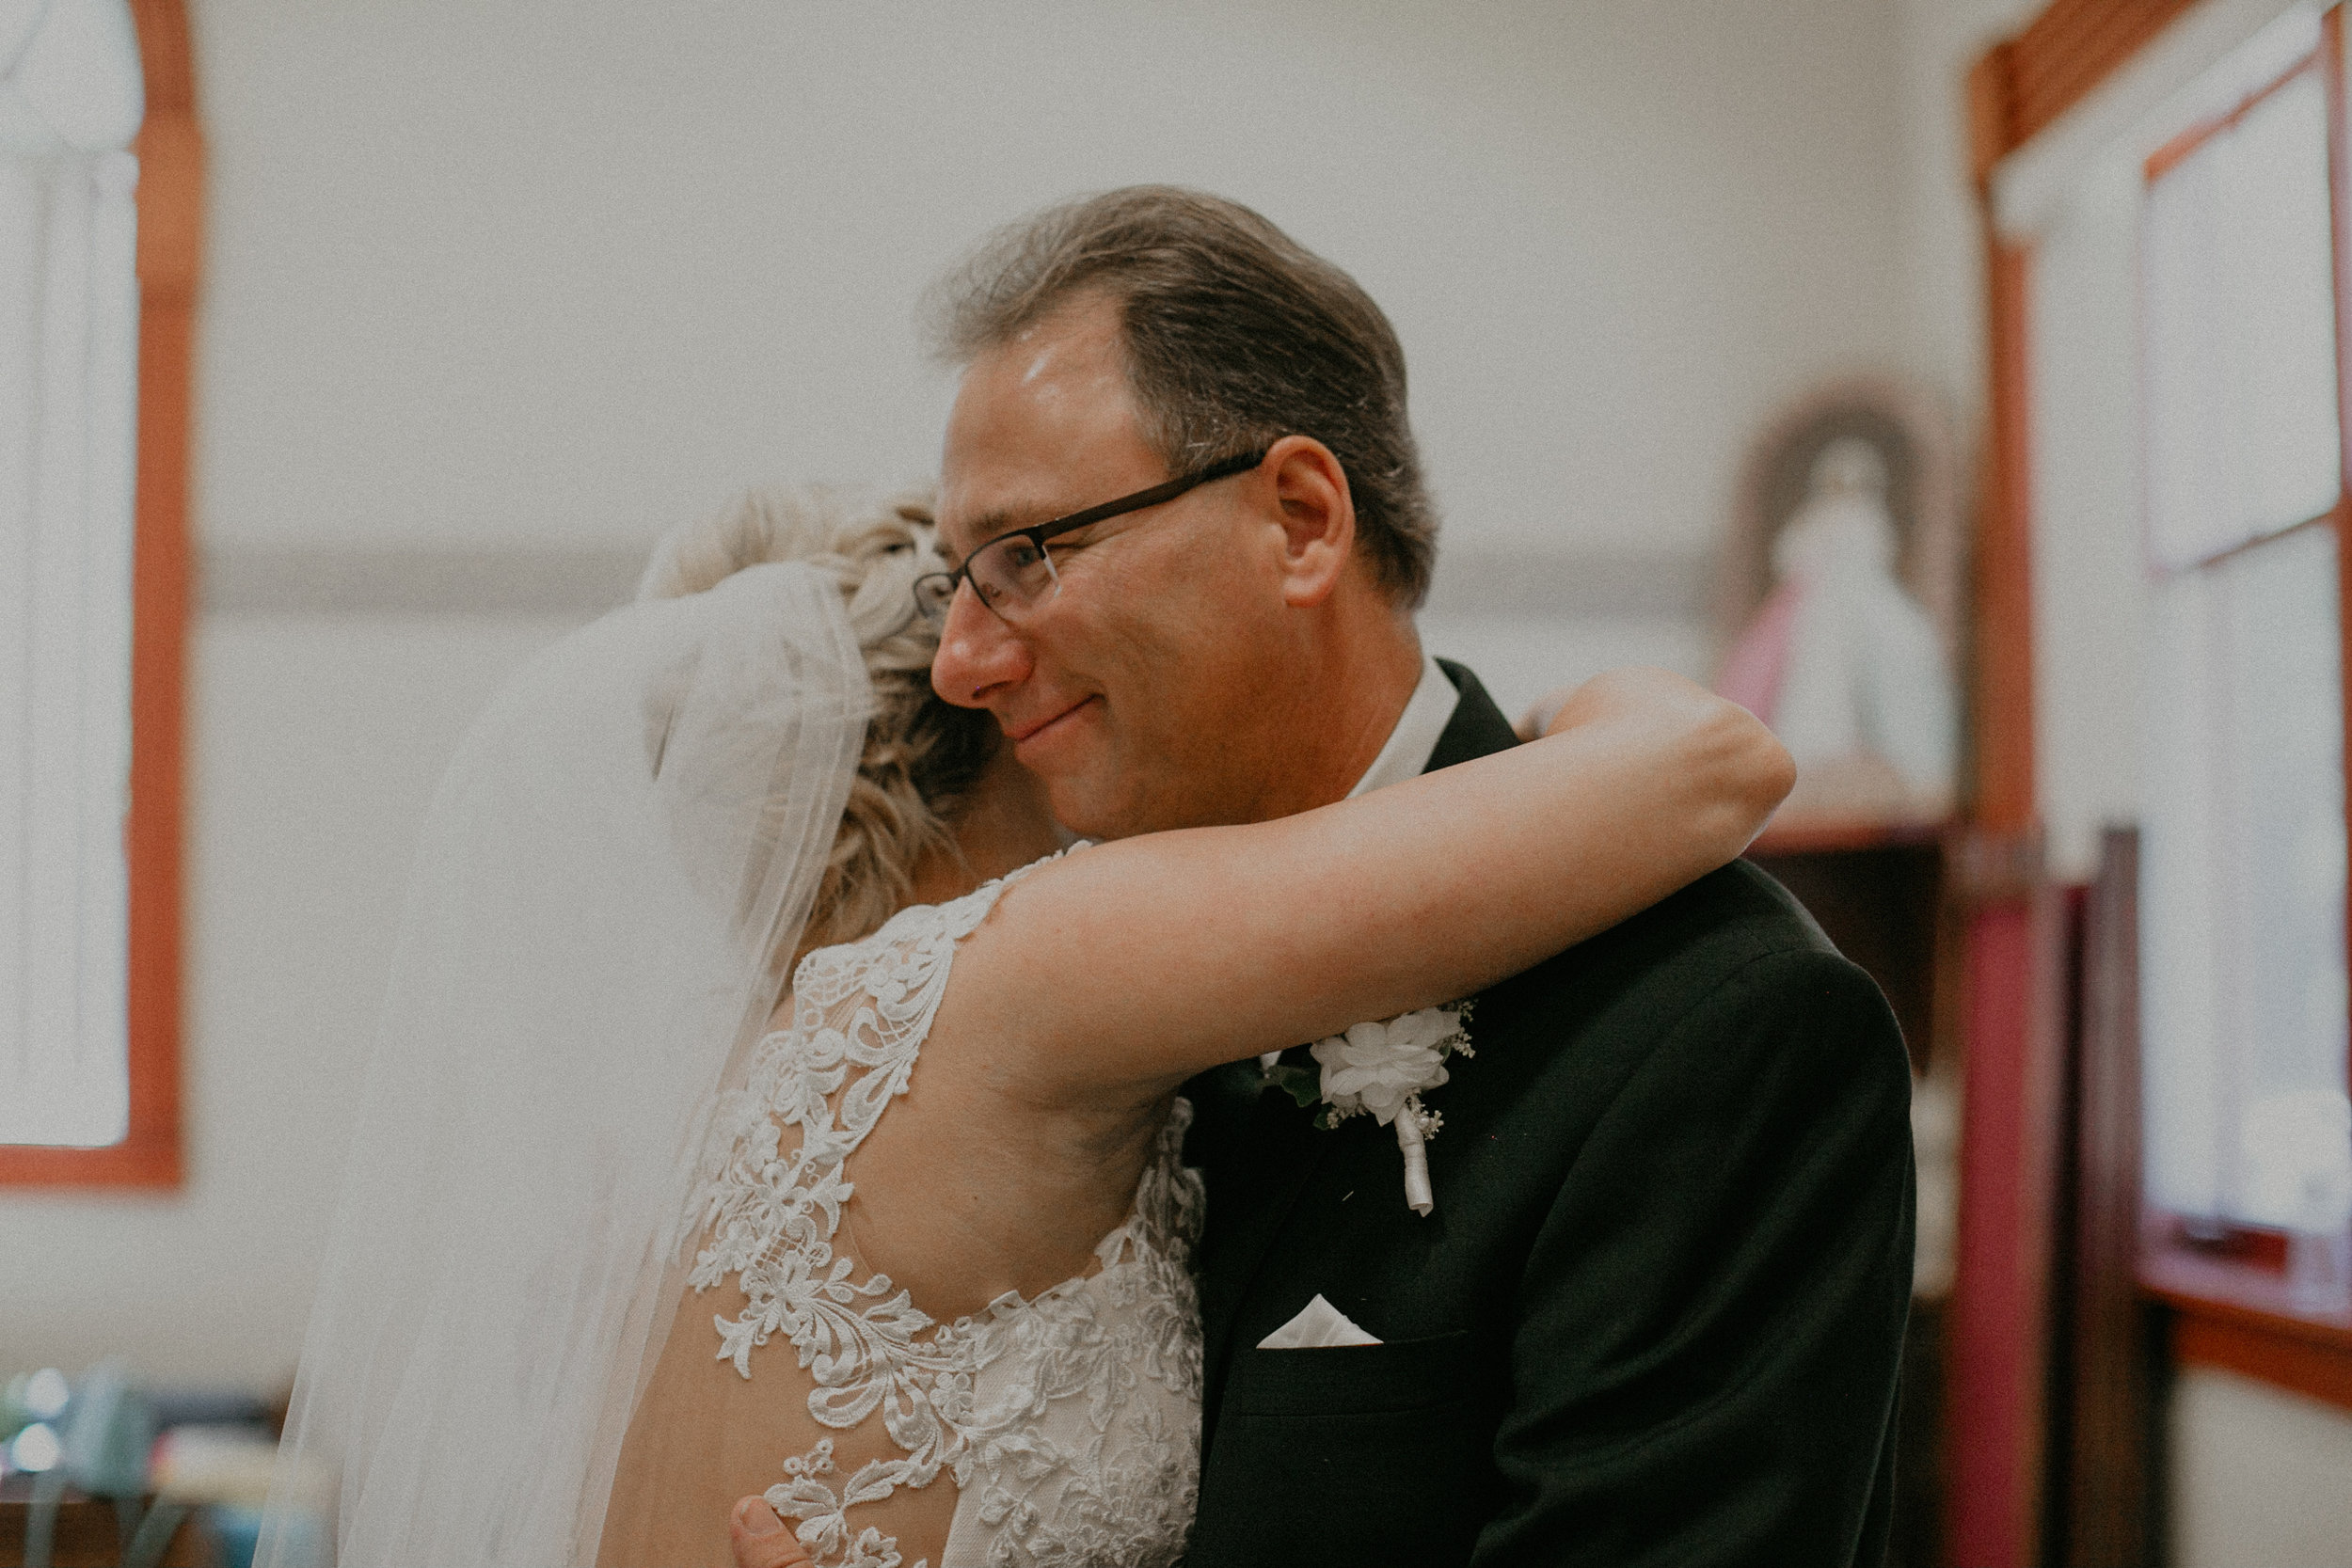 real and authentic moment of bride hugging her dad before her wedding in Marshfield WI